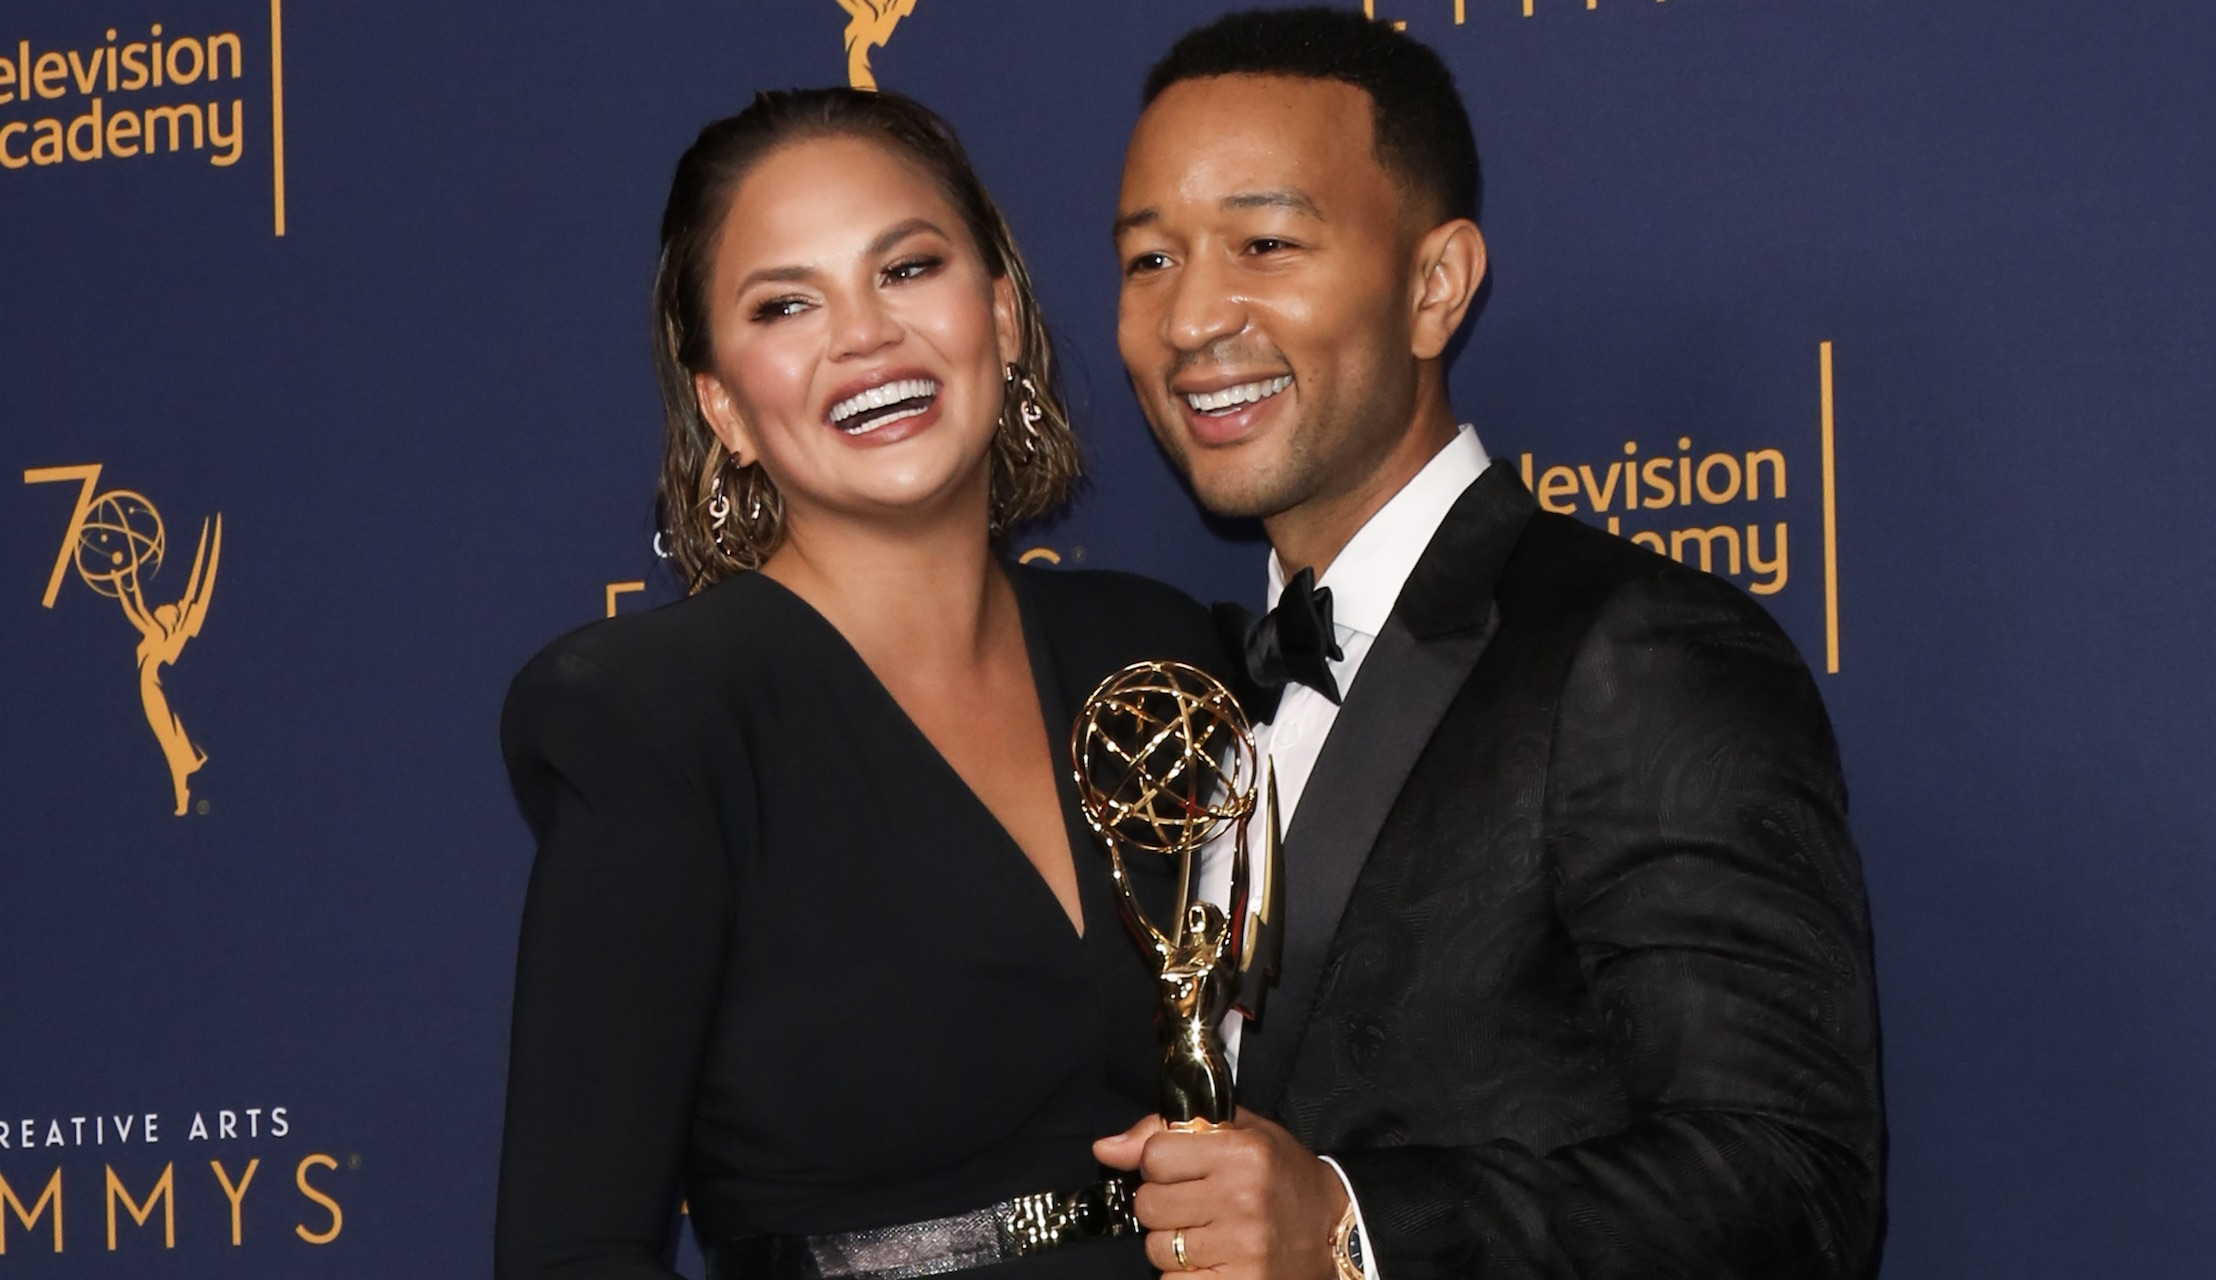 John Legend became the first black man to win an EGOT, and Chrissy Teigen's Insta post about it will make you cry